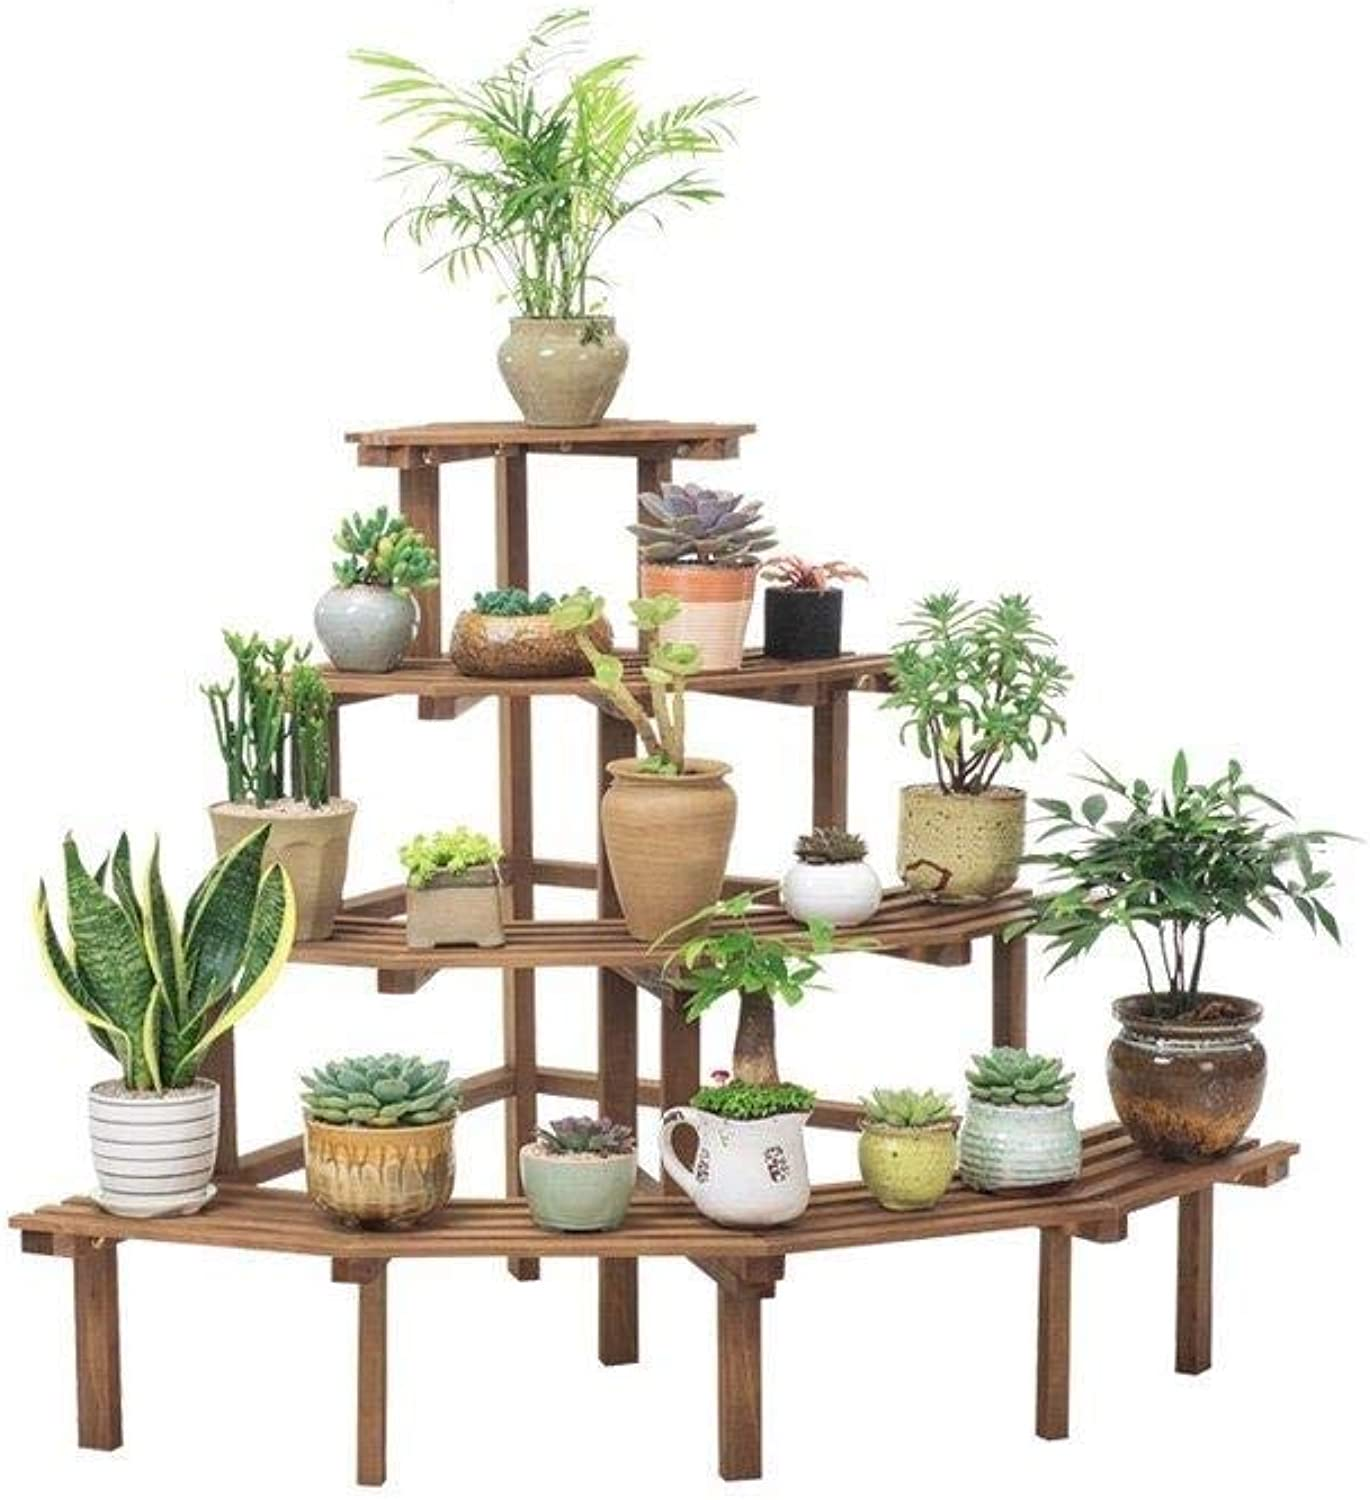 Flower Stand-Multi-Layer Wooden Corner Multi-Function Rack Flower Pot Display Stand, Plant Storage Rack (color   Brown, Size   60cm x 60cm x 80cm)